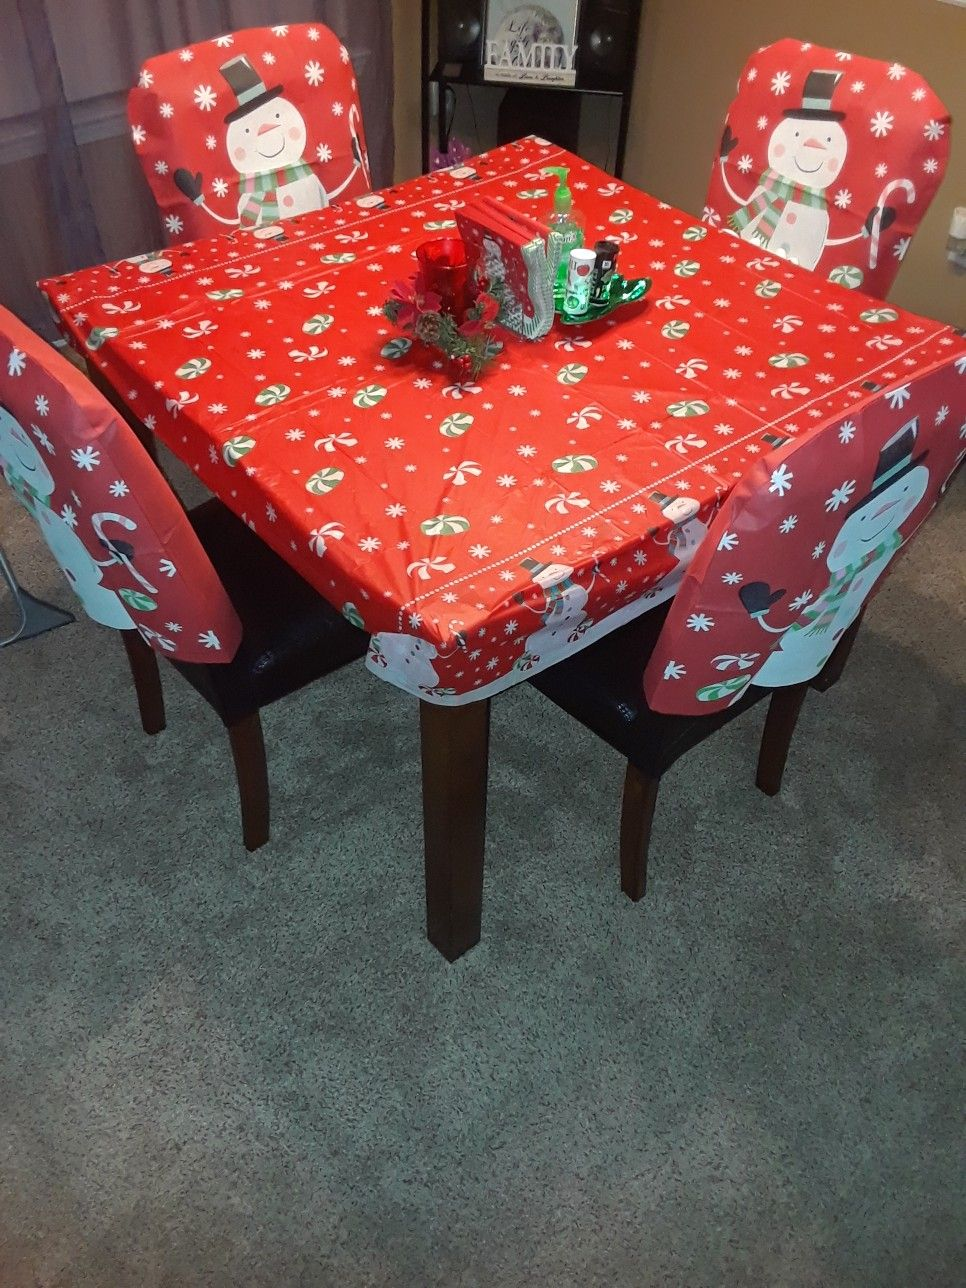 Dollar Tree Snowman Tablecloth and Chair Covers (With